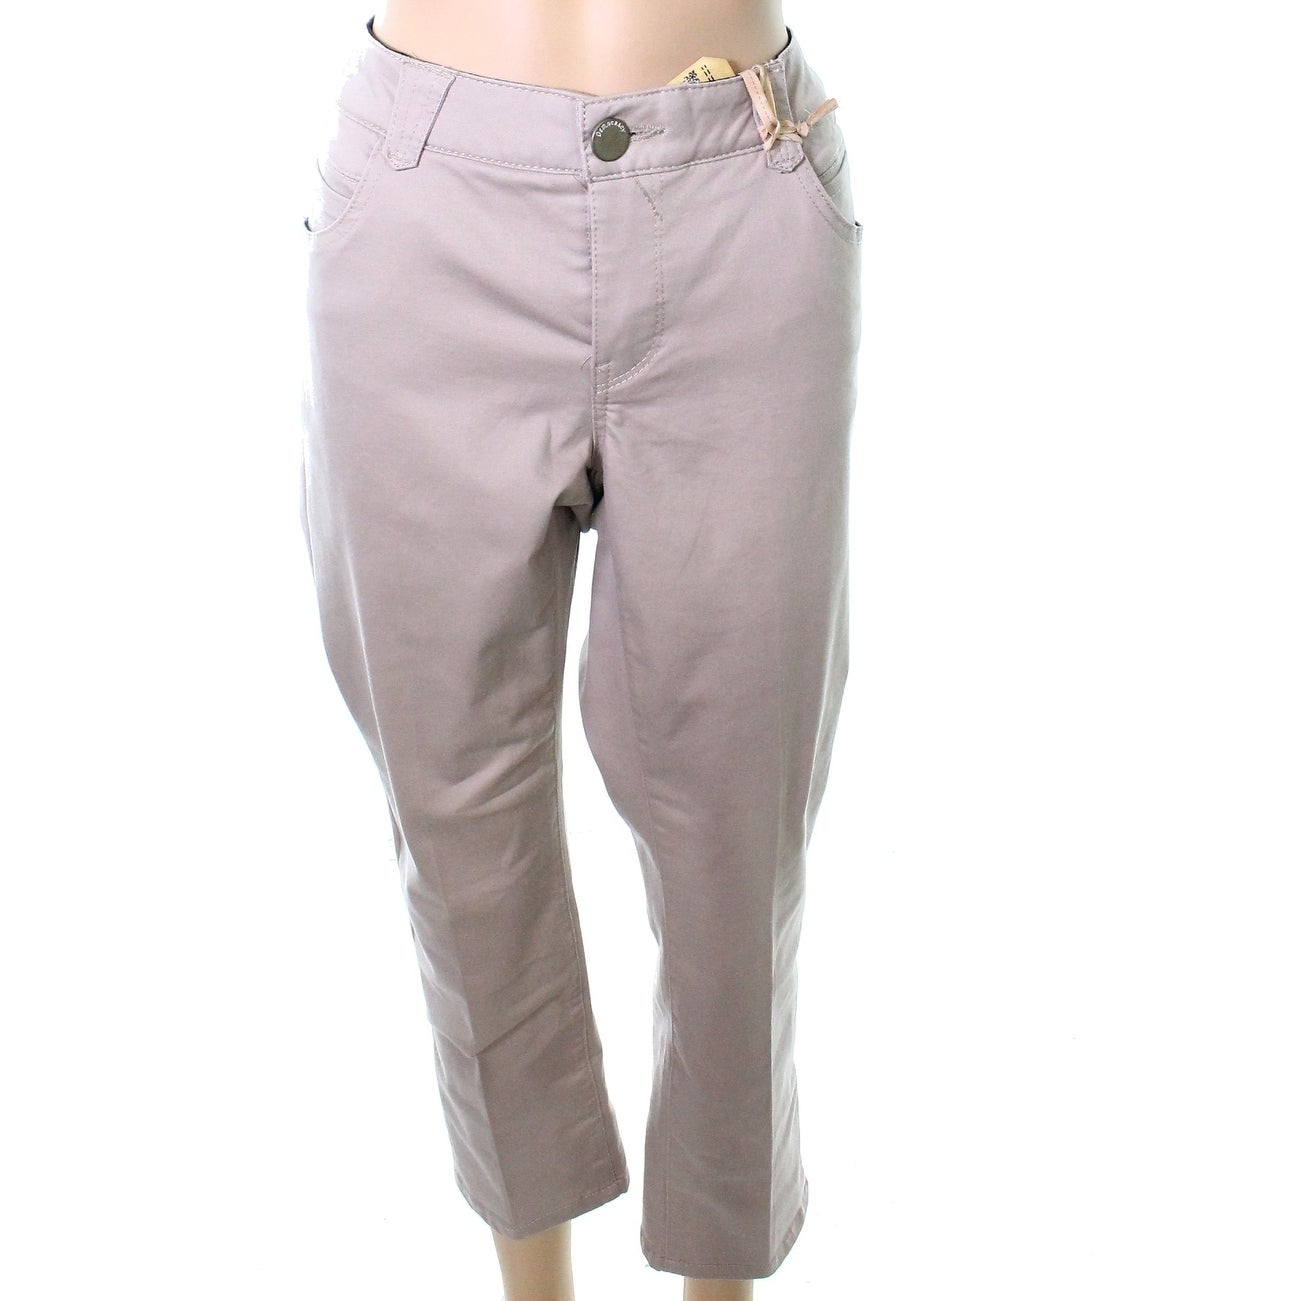 find lowest price purchase newest info for Democracy Beige Women's Size 16W Plus Khakis Chinos Stretch Pants